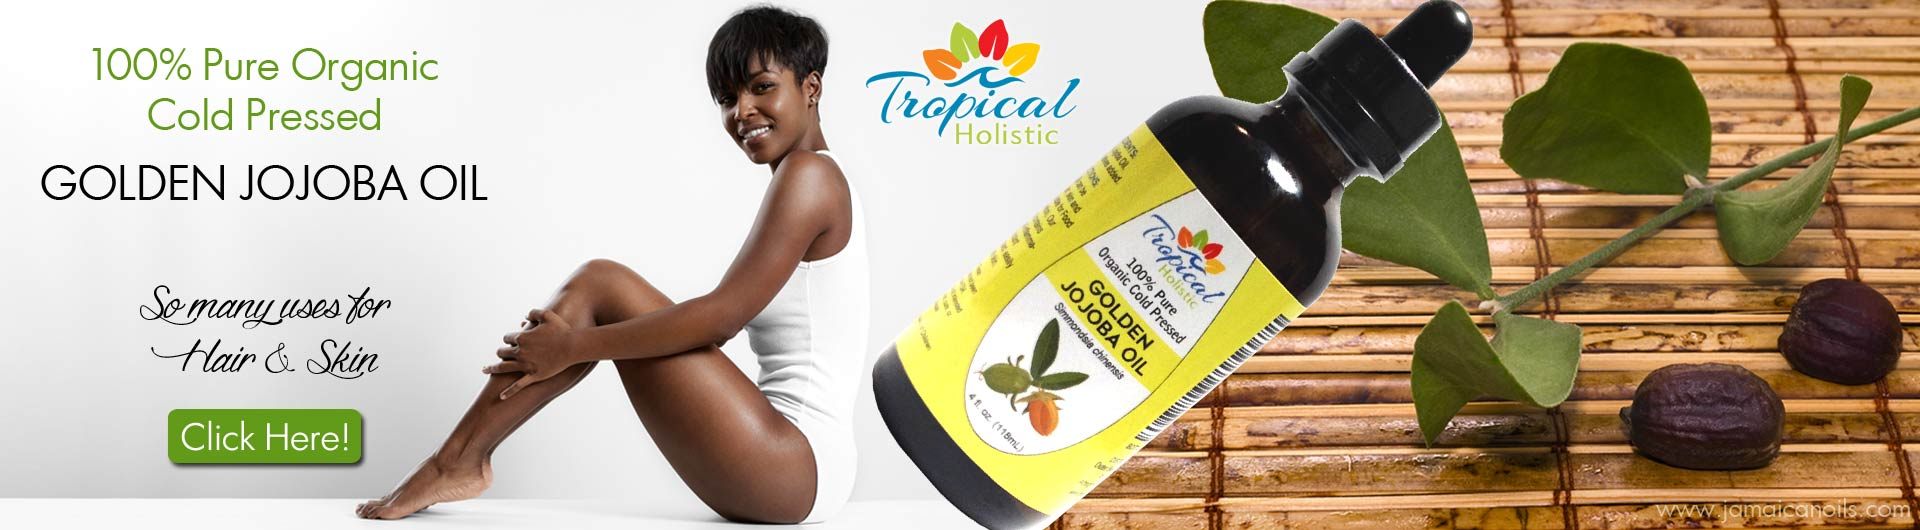 Golden Jojoba Oil by Tropical Holistic